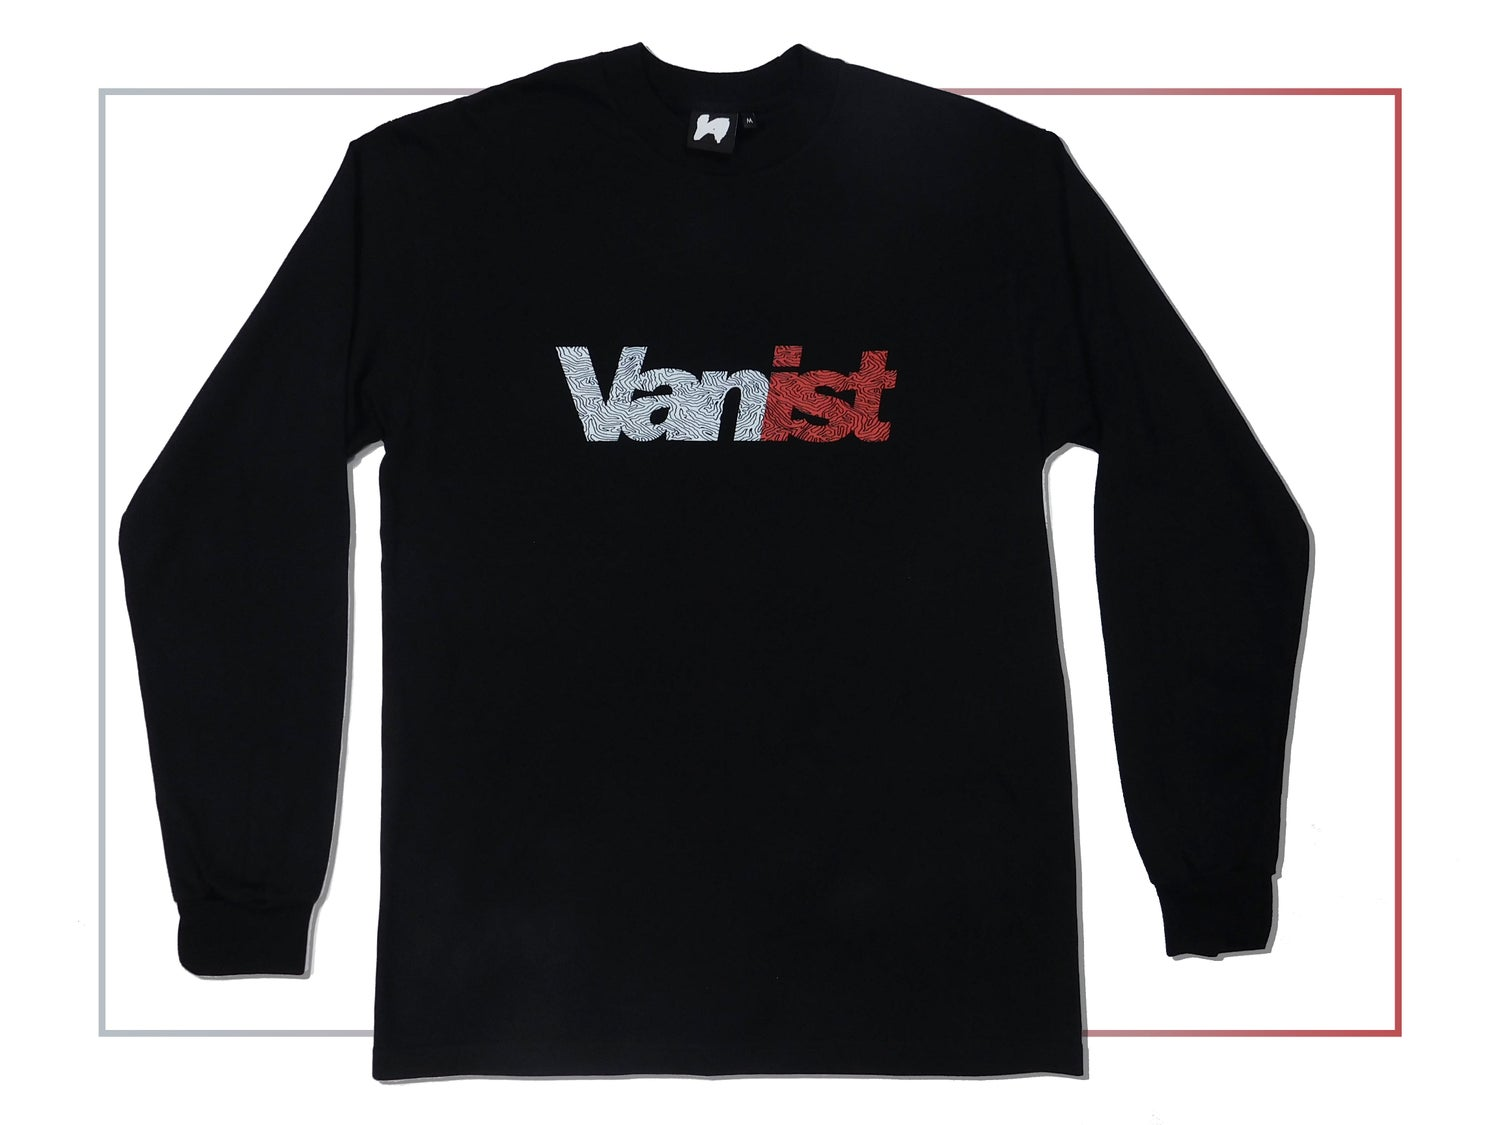 Image of Black Fingerprint Longsleeve